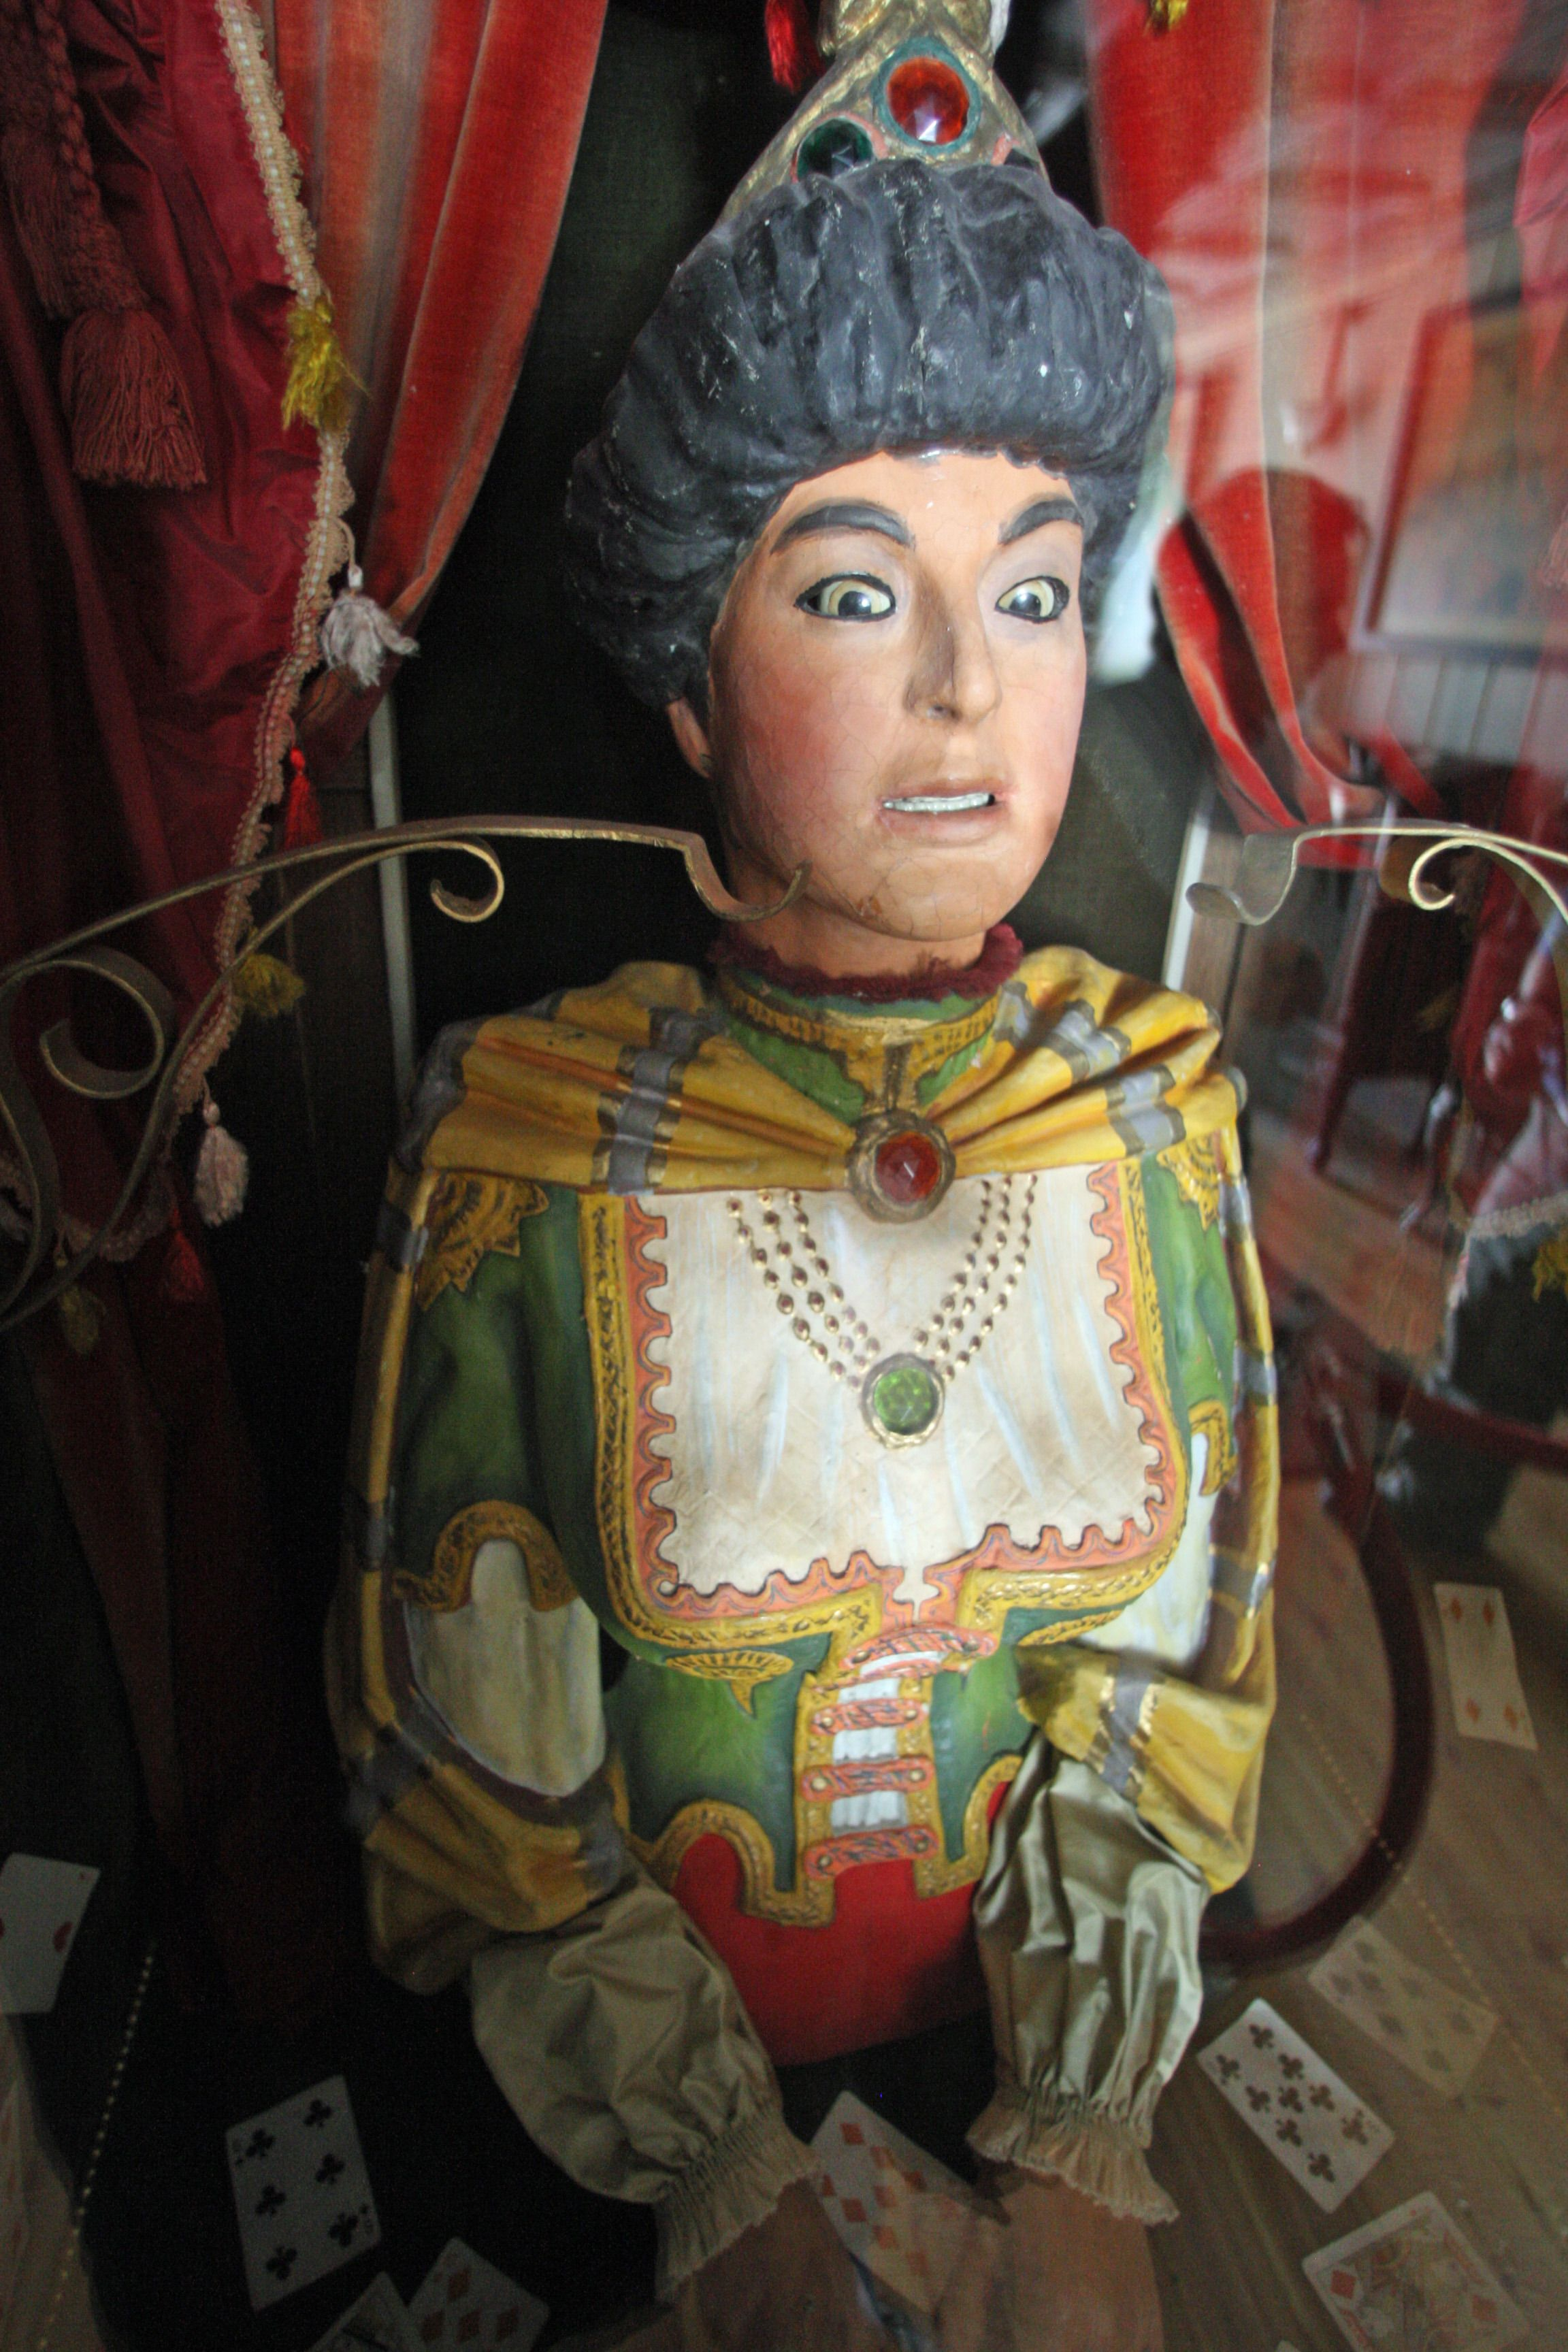 The Fortune Teller: Vintage Fortune Teller Machines/Automatons.....I Saw One